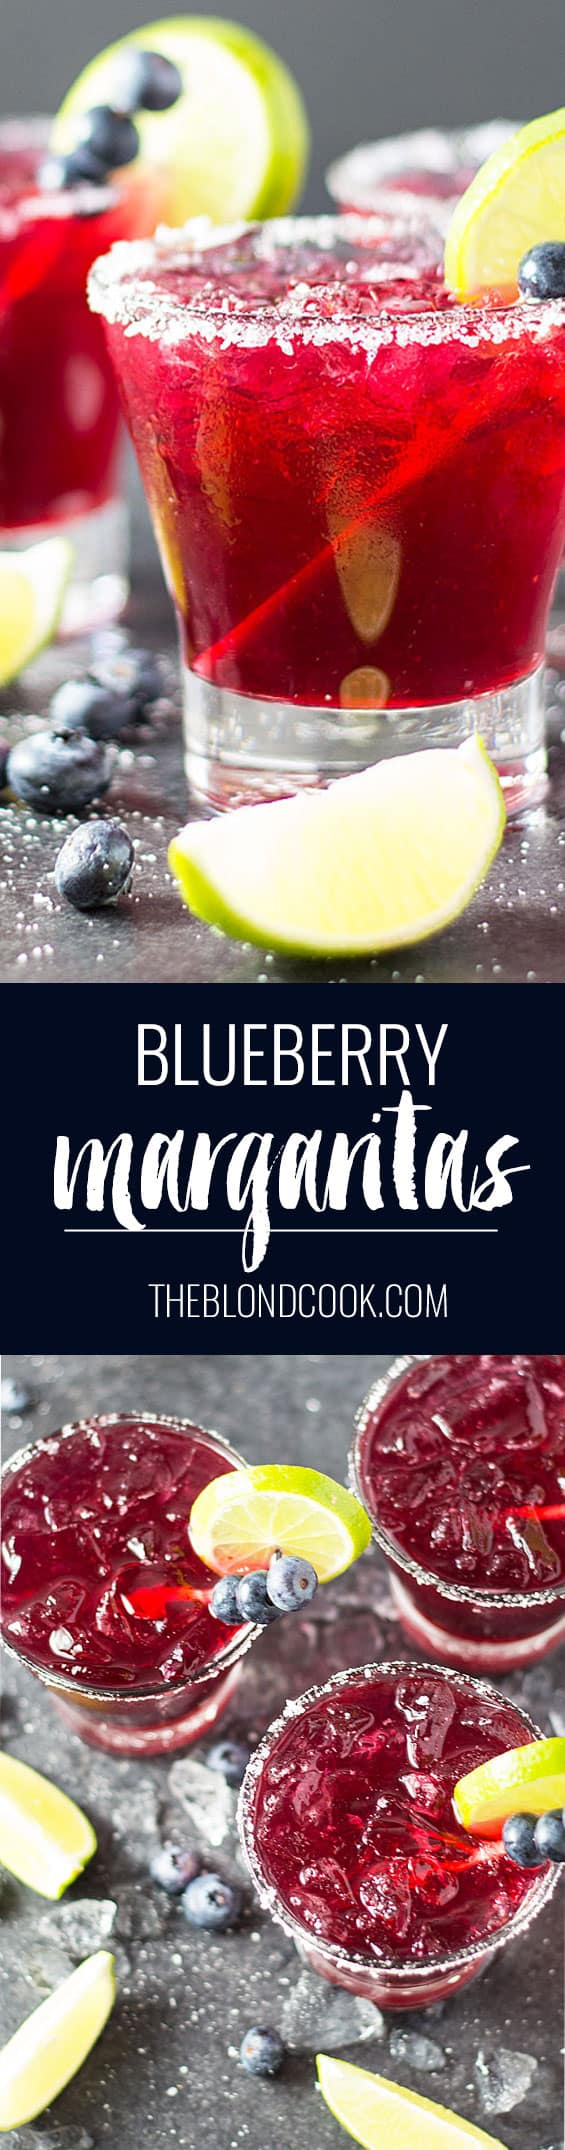 Blueberry Margaritas - Blueberry simple syrup, tequila, triple sec, margarita mix and lime juice create the ultimate blueberry margarita!